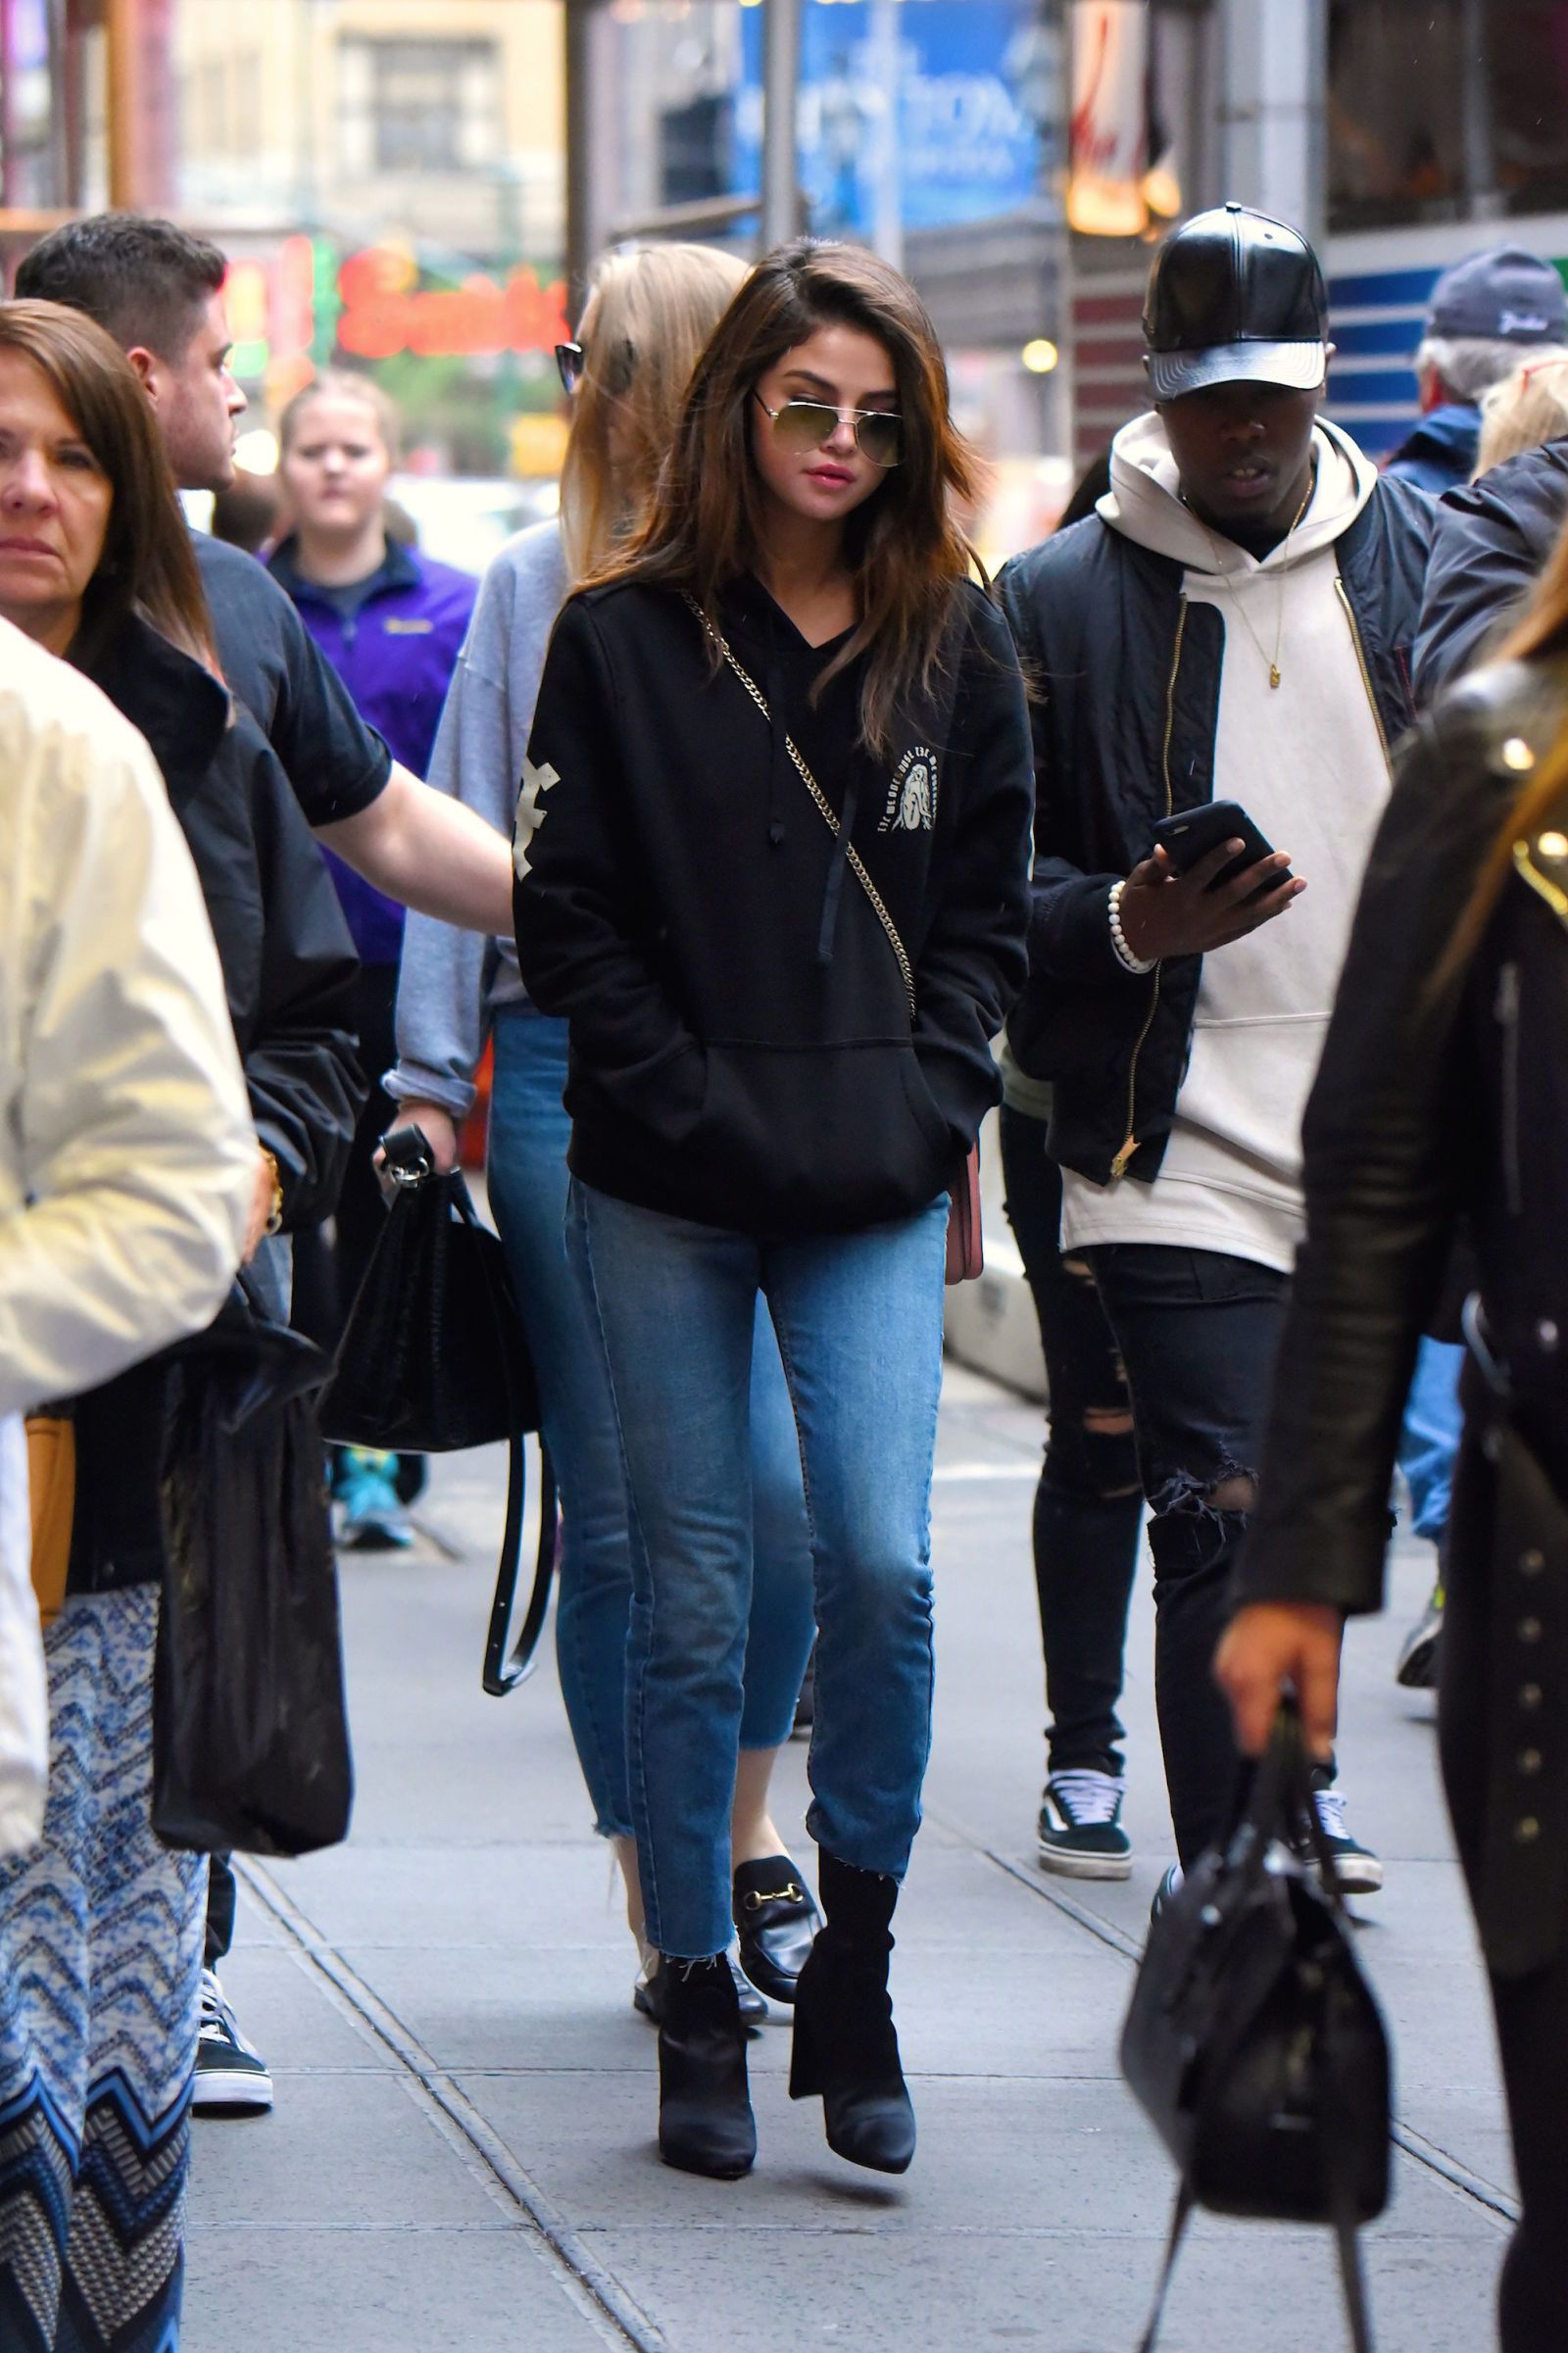 ab9a2835fccb Selena Gomez Gives The Weeknd a New York City Street Style Shoutout ...